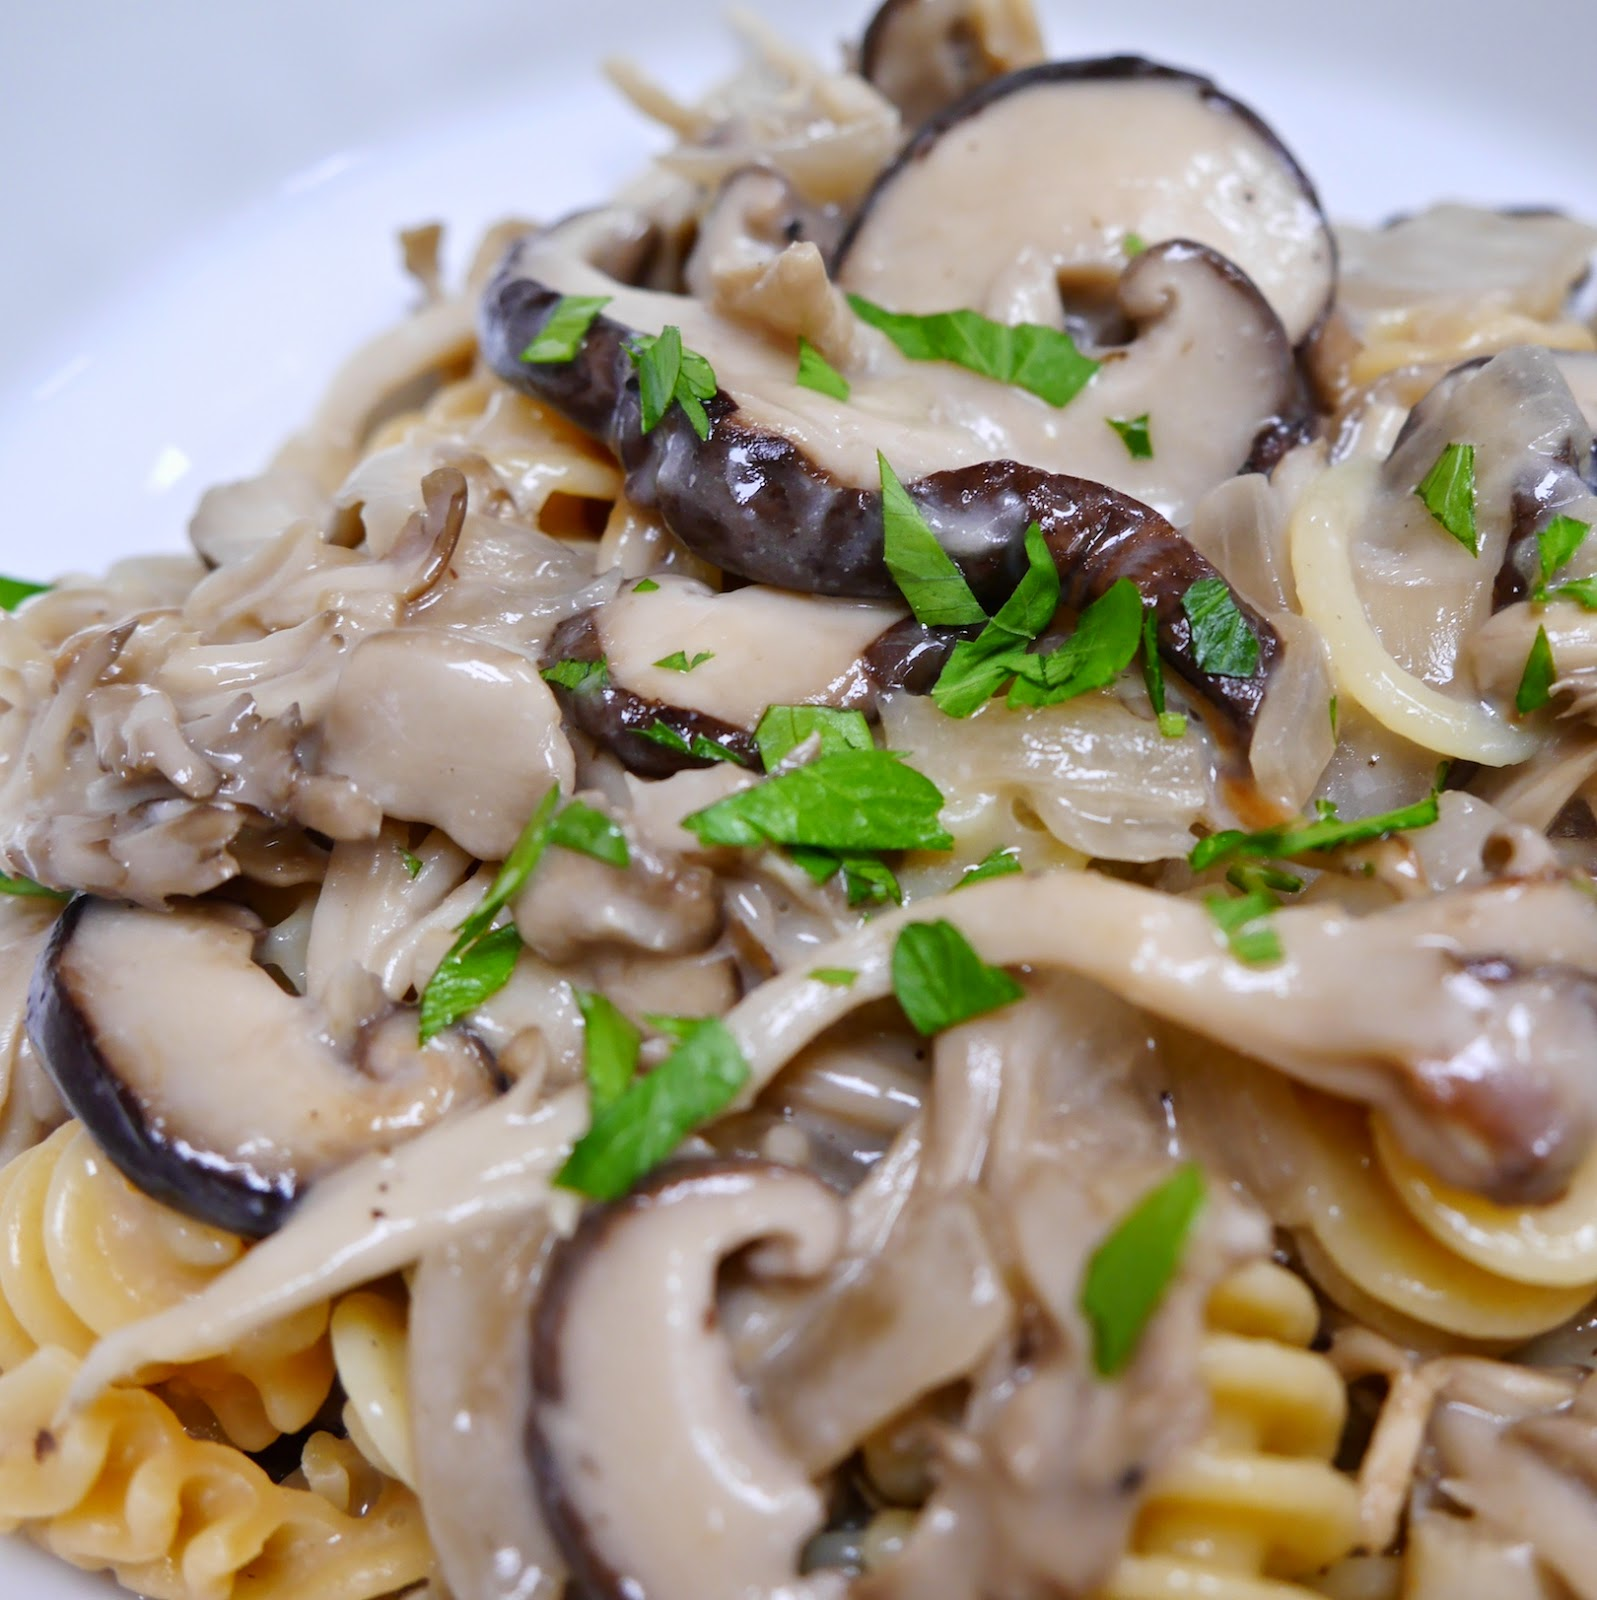 Foods for long life shiitake and maitake mushroom stroganoff an fresh shiitake and maitake mushrooms are used for this elegant vegan stroganoff recipe but others can be substituted follow foods for long life on facebook forumfinder Images